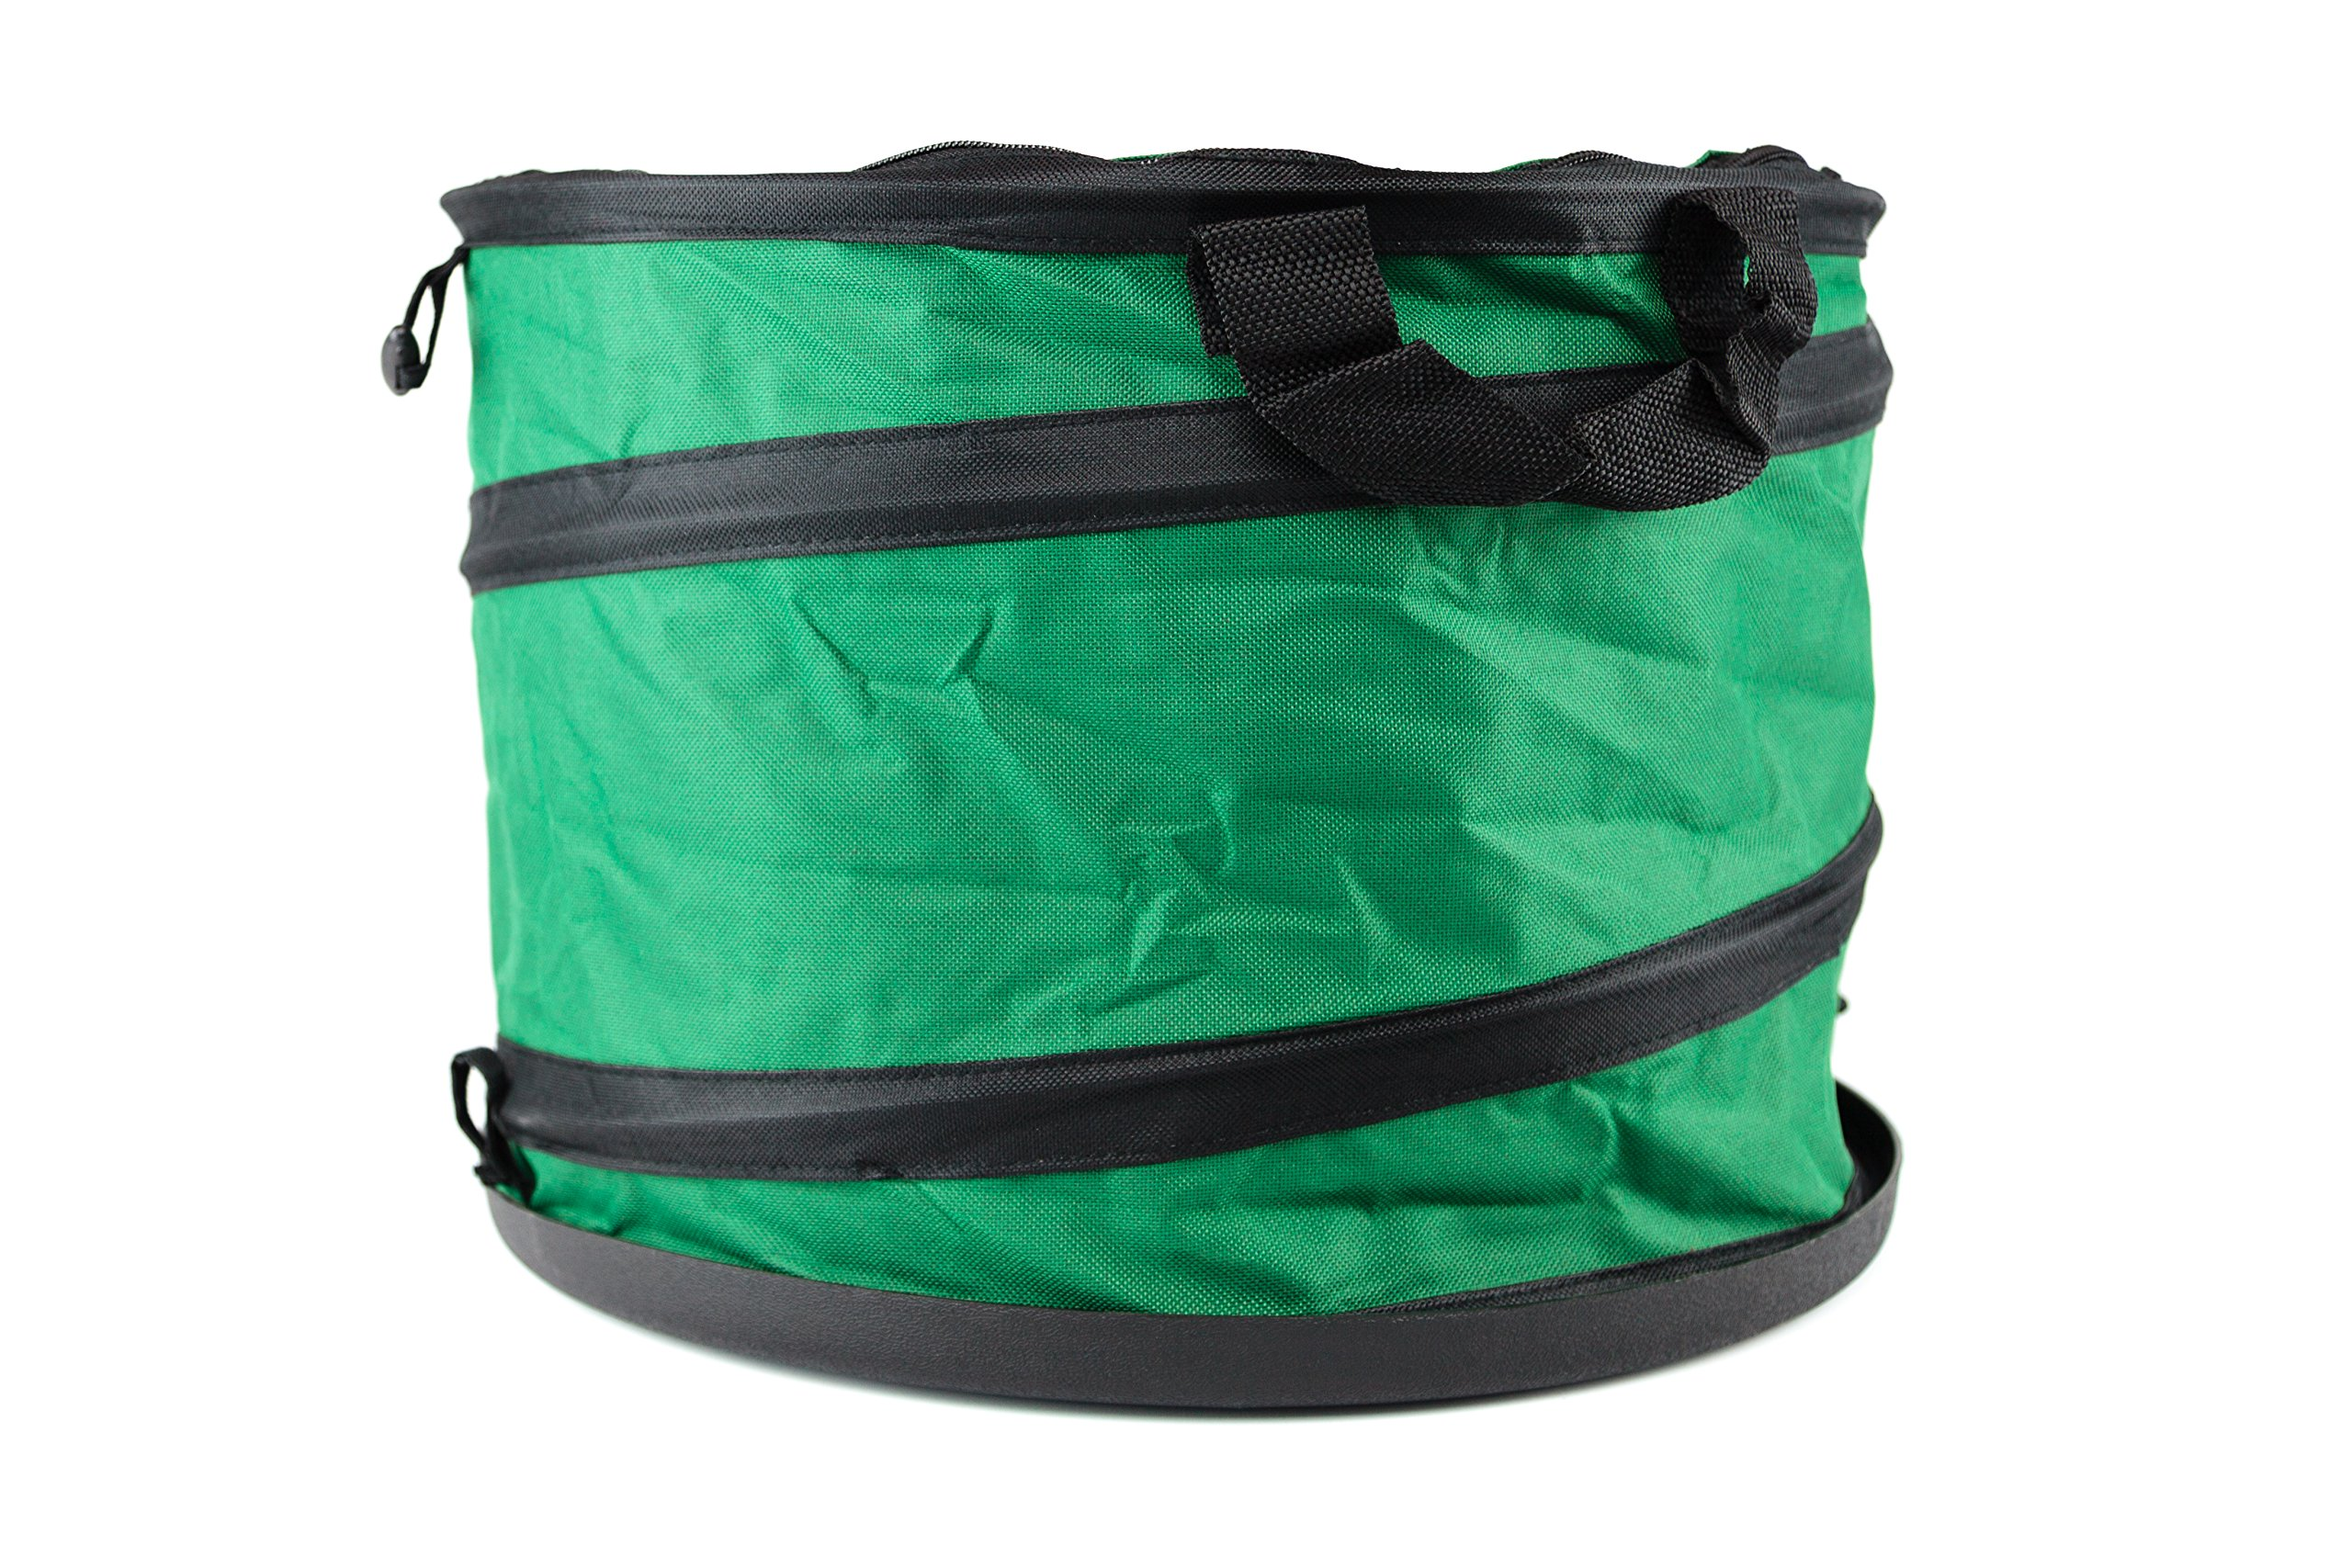 Useful UH-GB171 10 Gallon Hard Shell Bottom Pop-Up Gardening Bag or Camping trash can with Zip Closed Lid